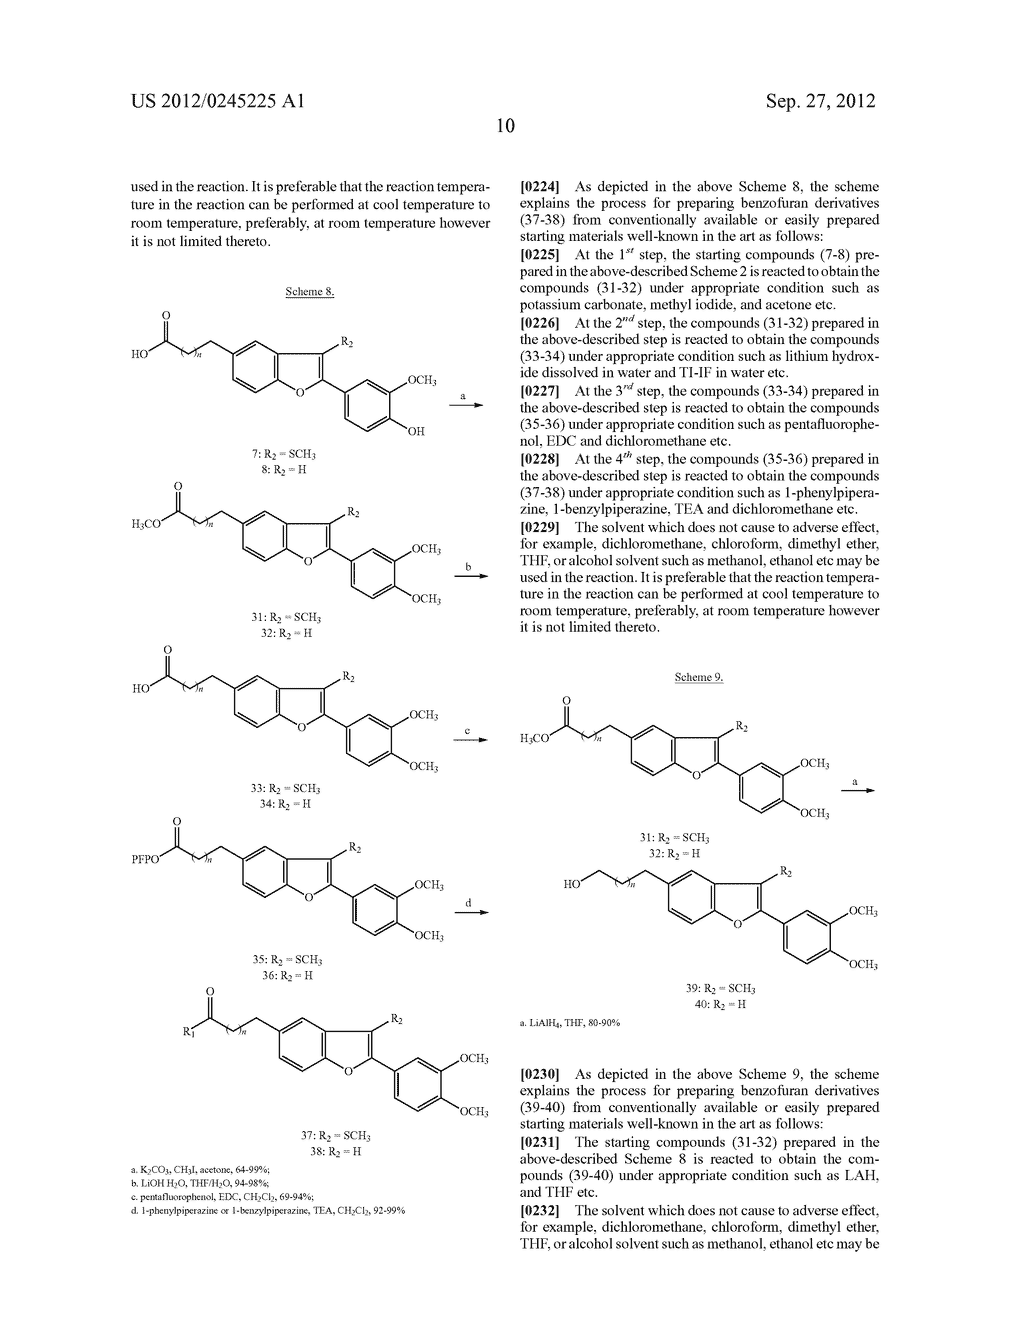 NOVEL BENZOFURAN TYPE DERIVATIVES, A COMPOSITION COMPRISING THE SAME FOR     TREATING OR PREVENTING COGNITIVE DYSFUNCTION AND THE USE THEREOF - diagram, schematic, and image 26